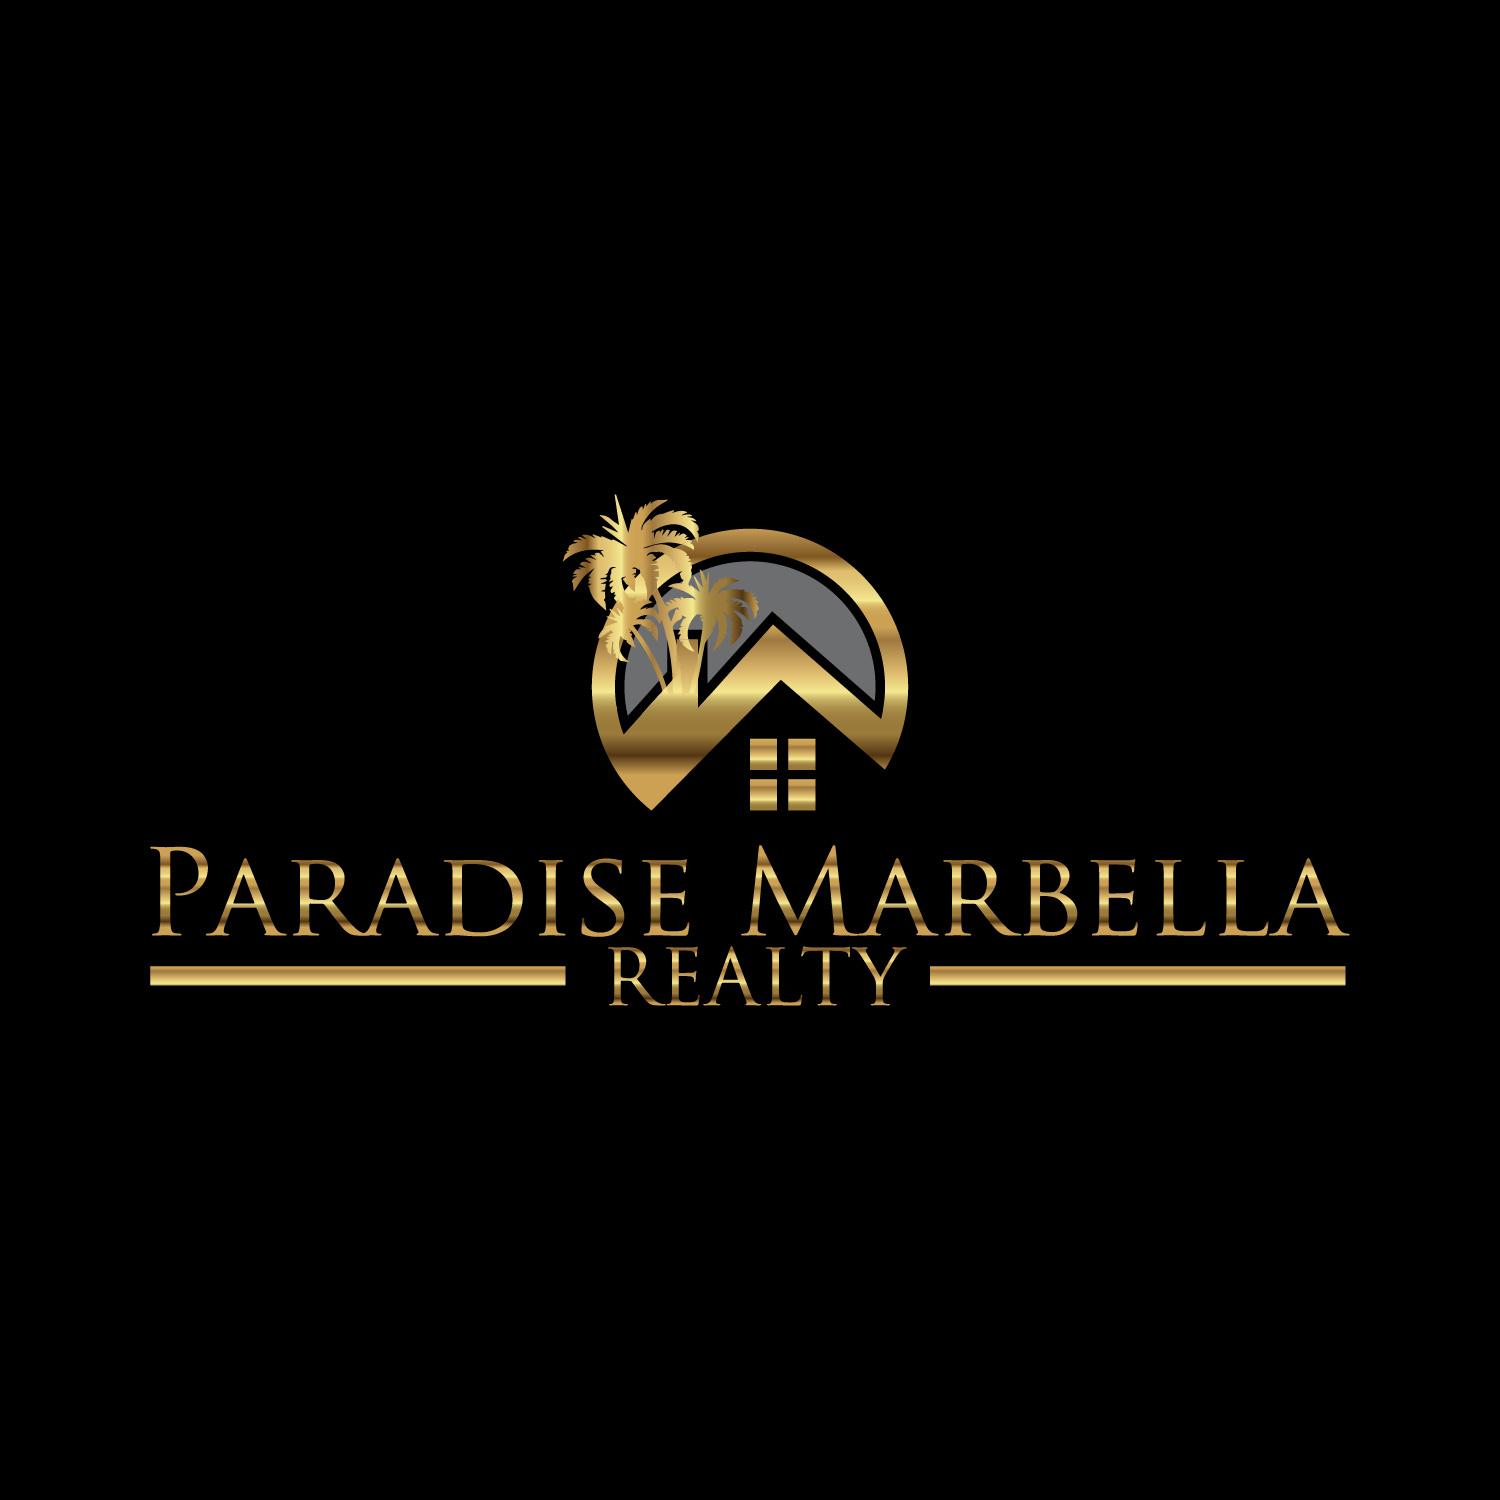 Logo Design by lagalag - Entry No. 77 in the Logo Design Contest Captivating Logo Design for Paradise Marbella Realty.